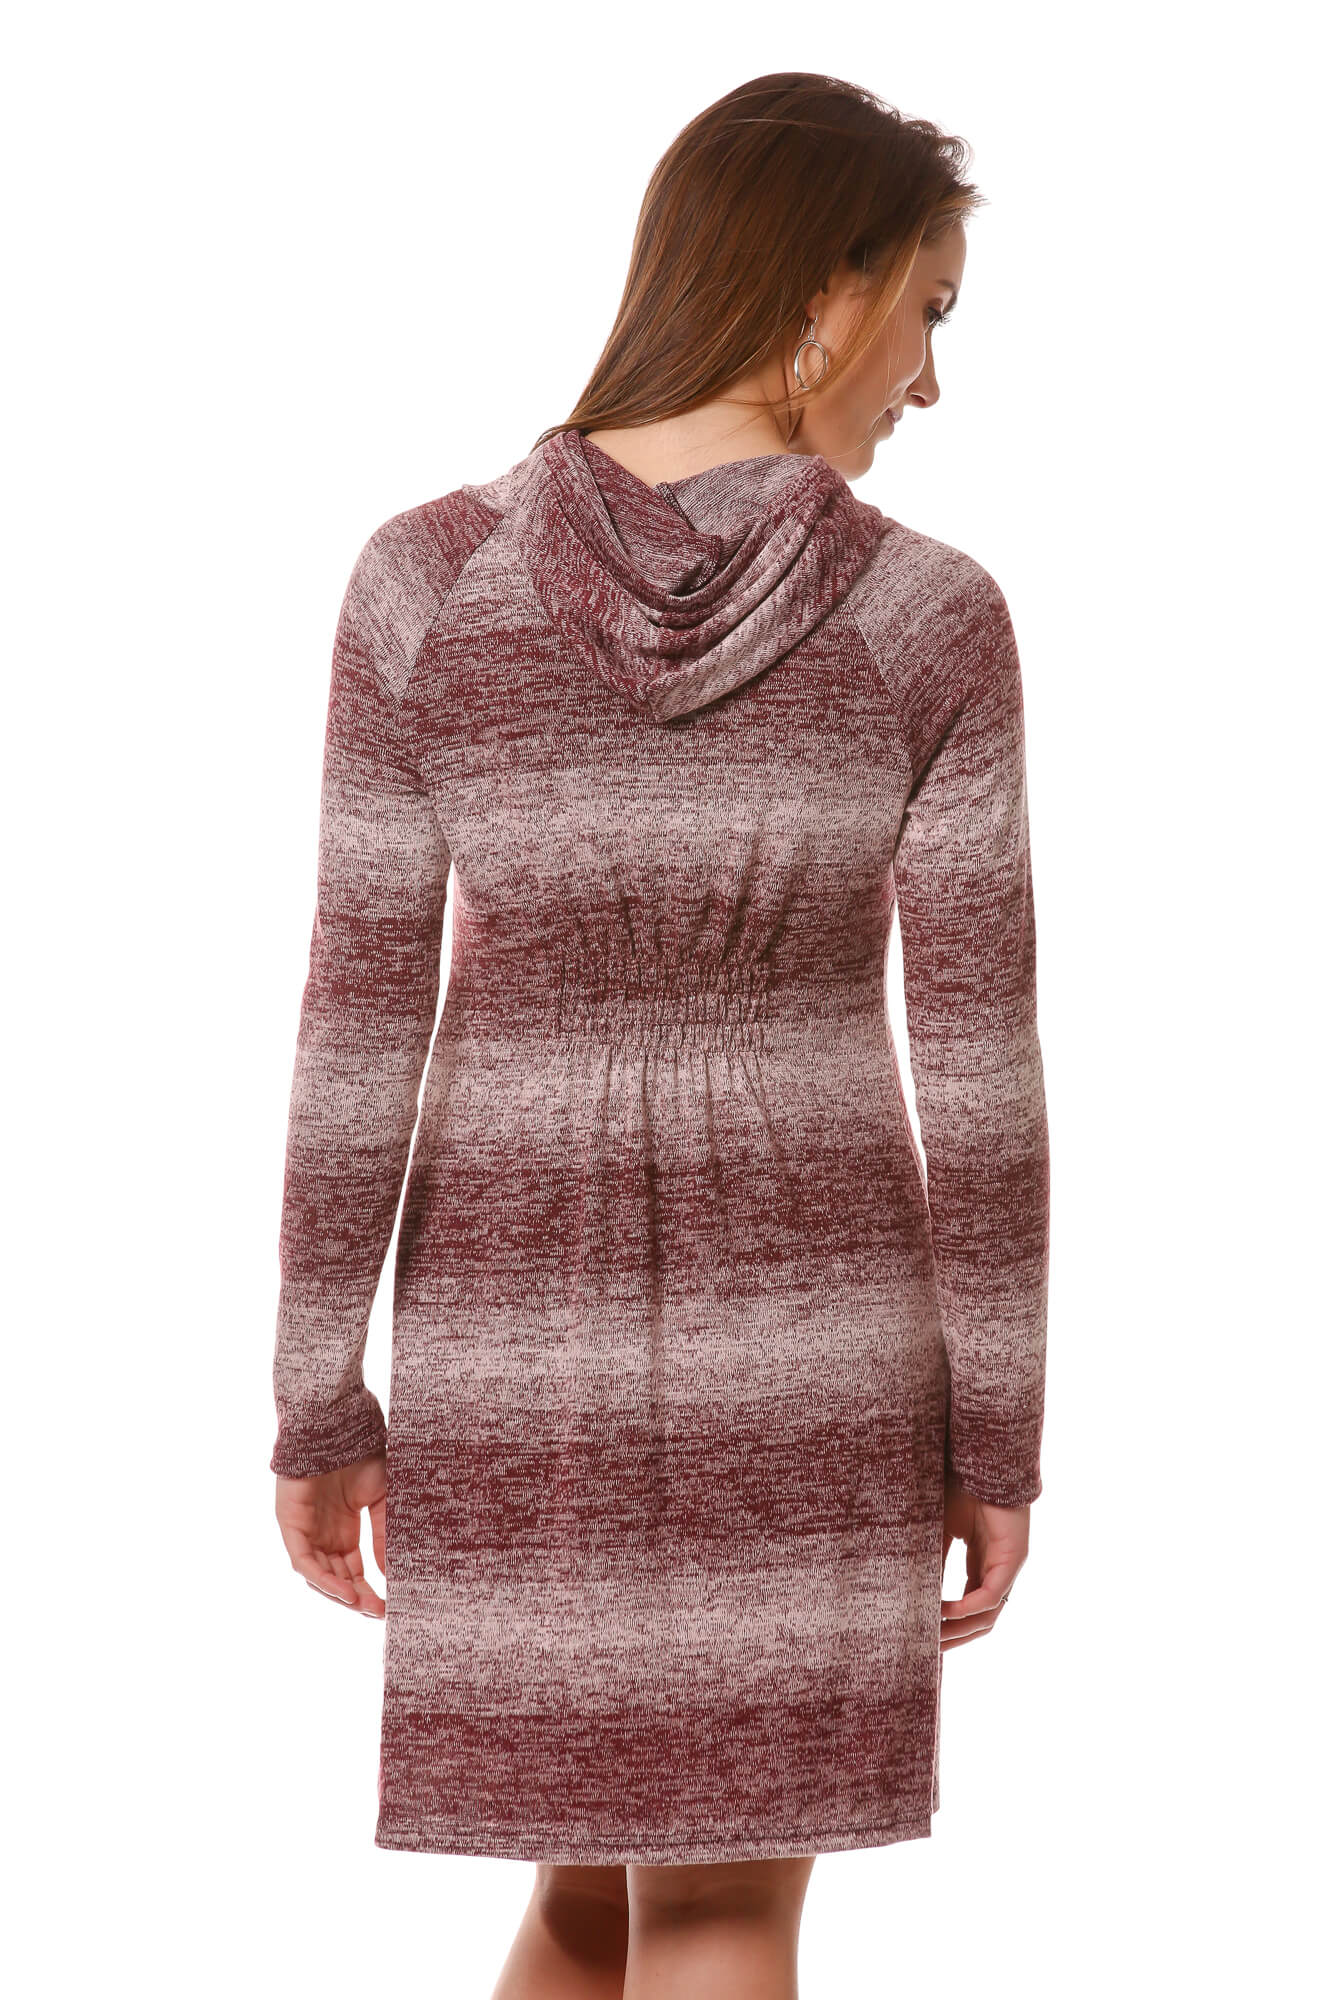 Women's Maroon Striped Hoodie Sweater Dress with Cowl Neck | Neesha